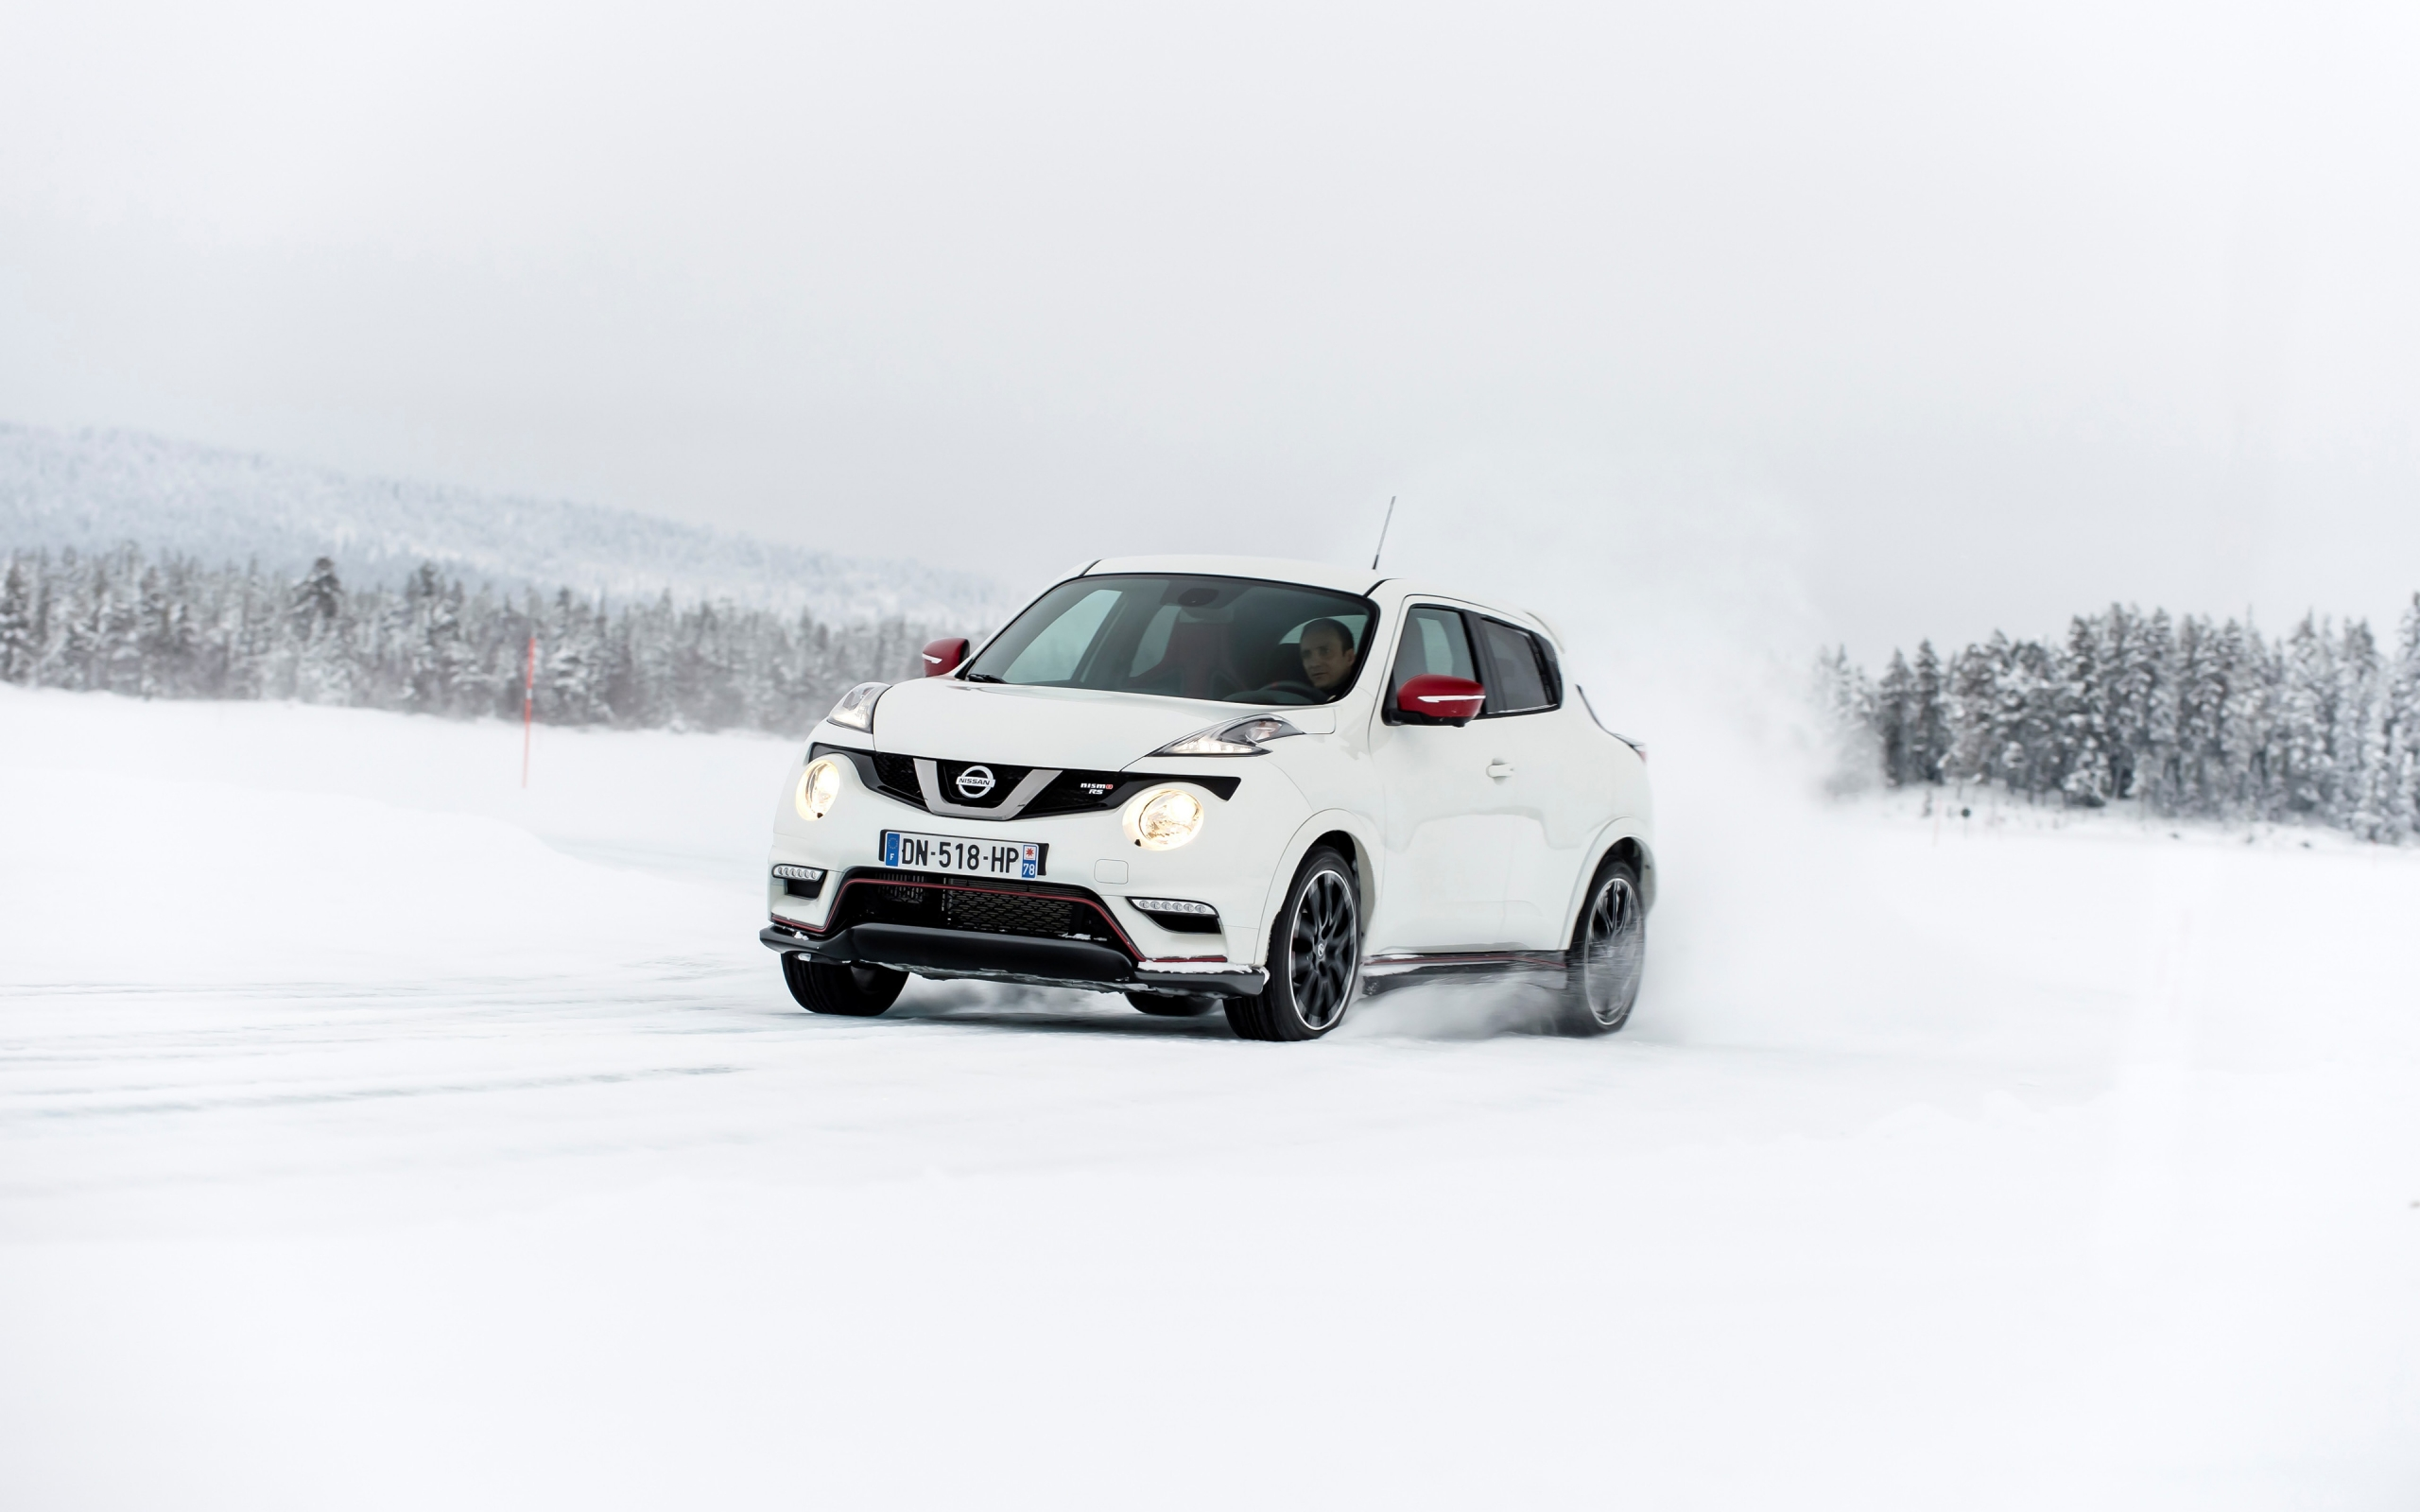 Nissan Juke Nismo RS 2015 - Photo 76 - Taille: 2560x1600